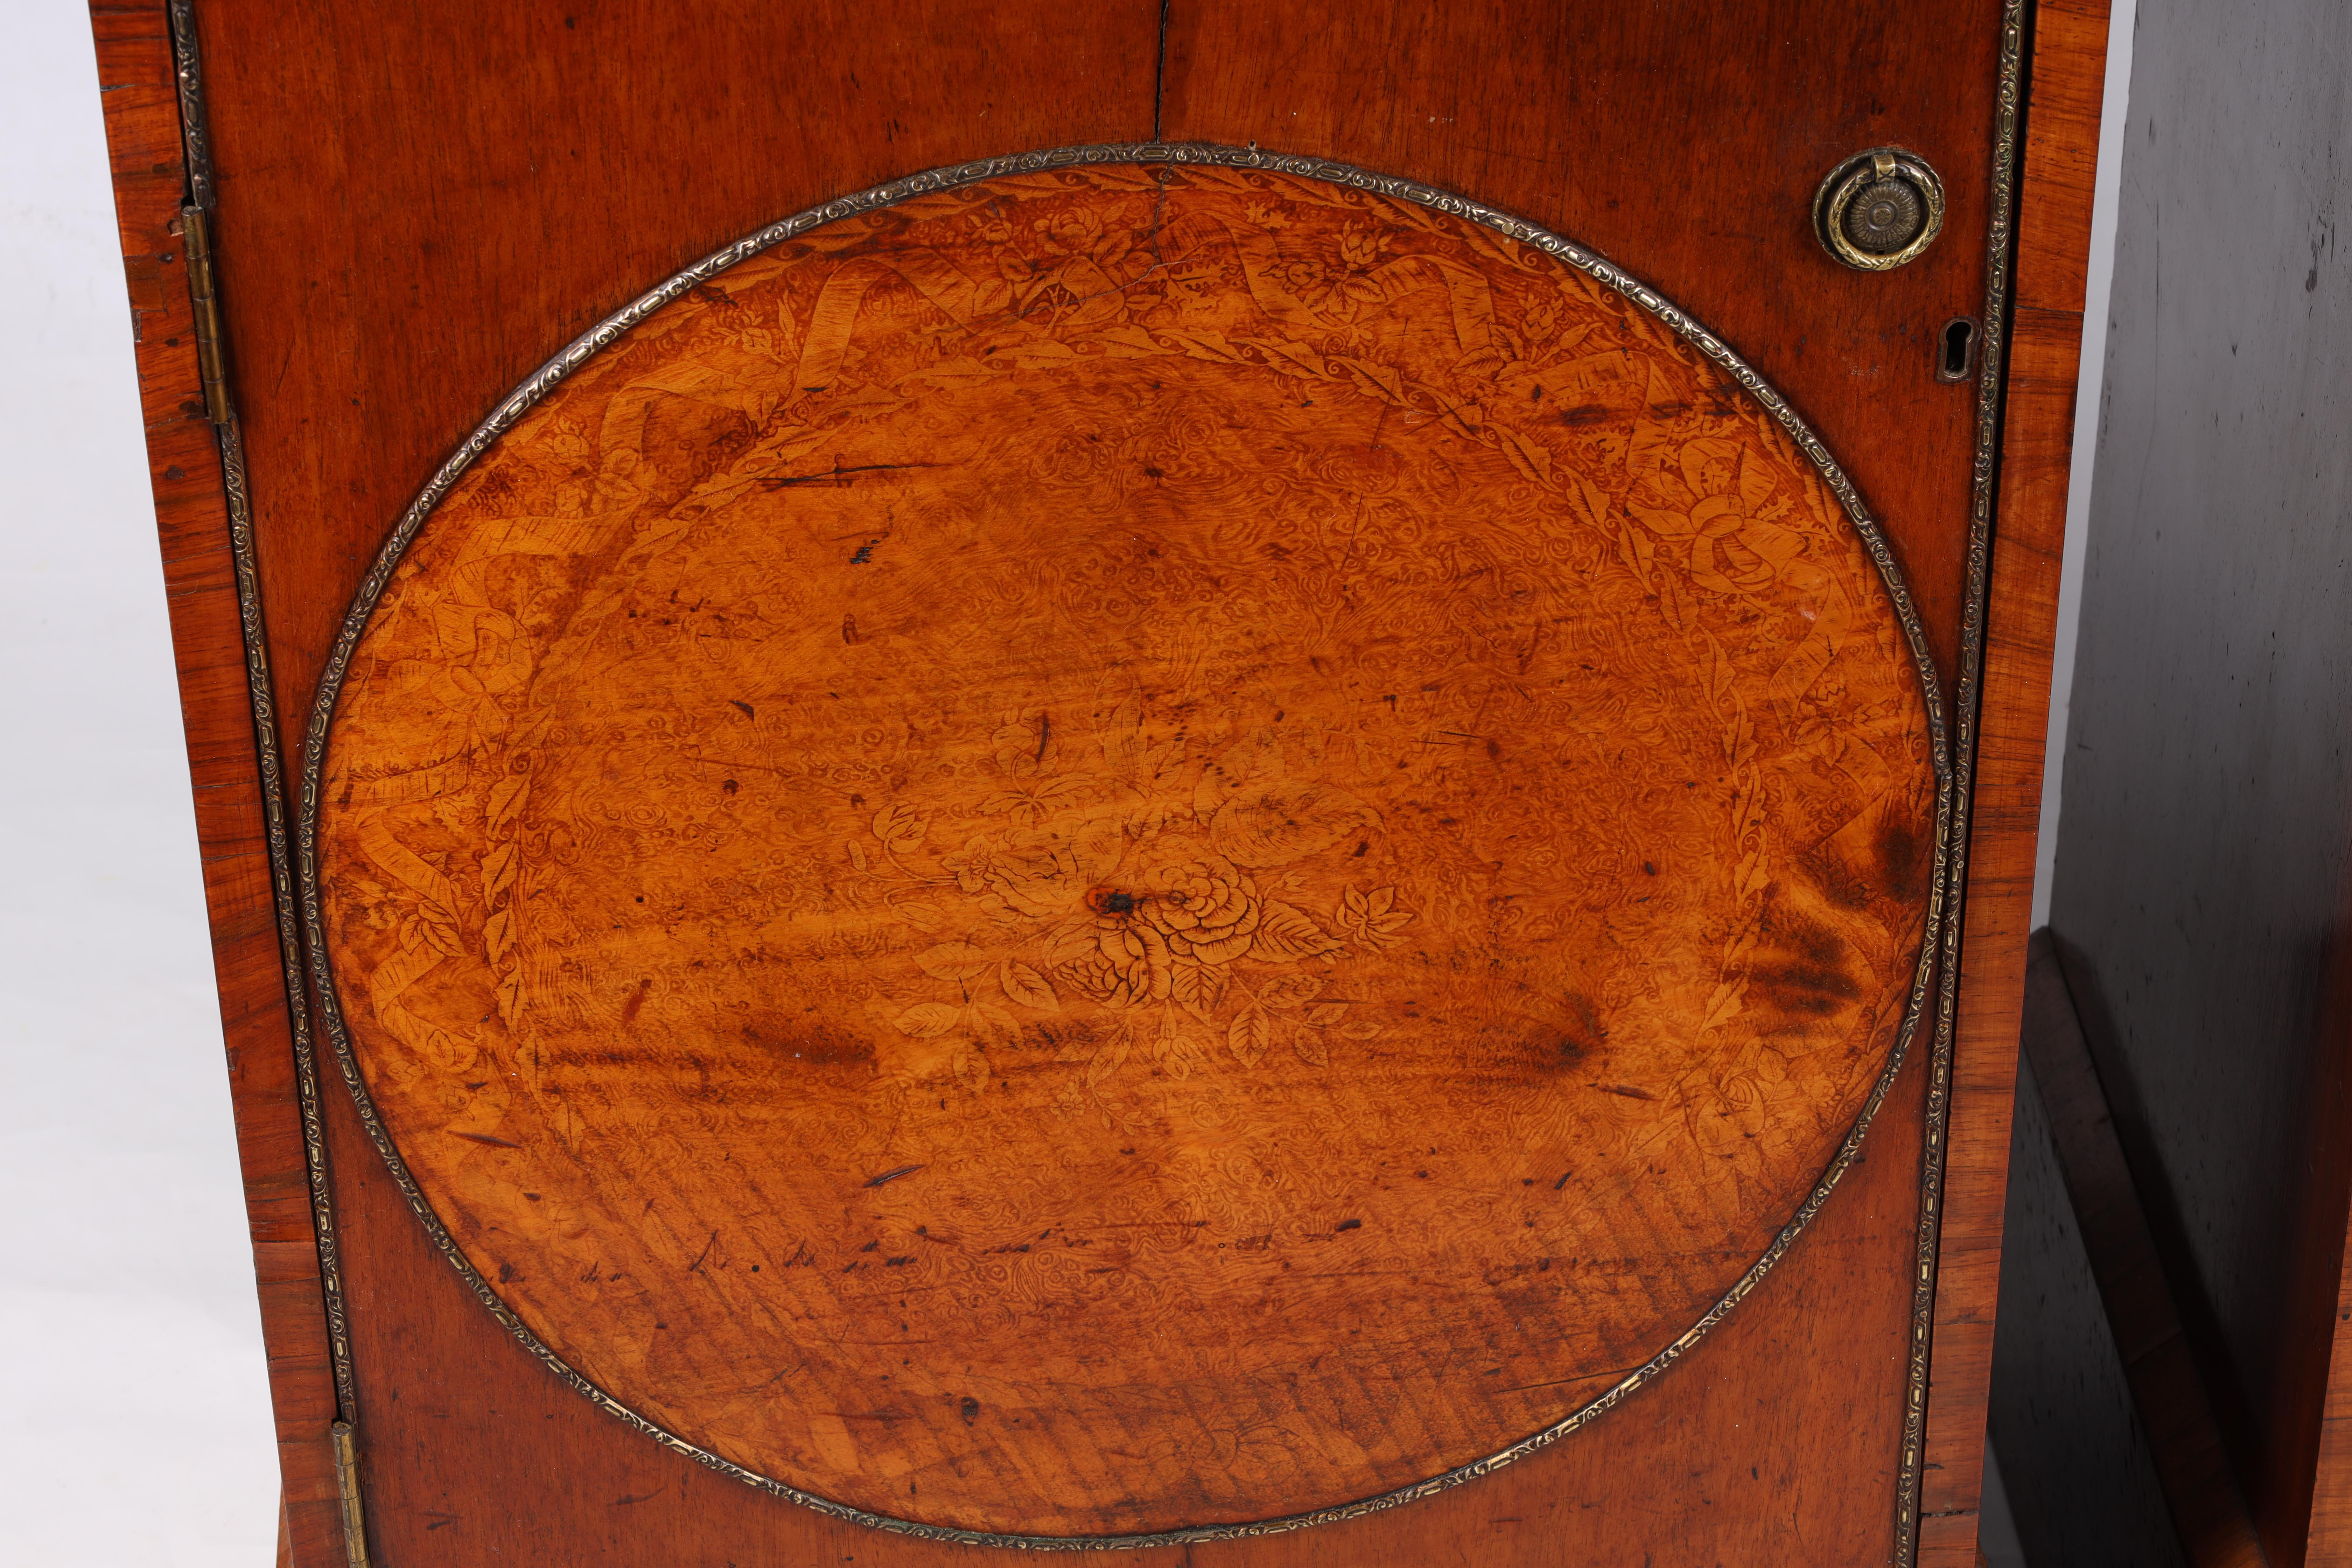 A LARGE PAIR OF GEORGE III KINGWOOD BANDED MAHOGANY PEDESTALS with unusual pen work panels depicting - Image 4 of 11